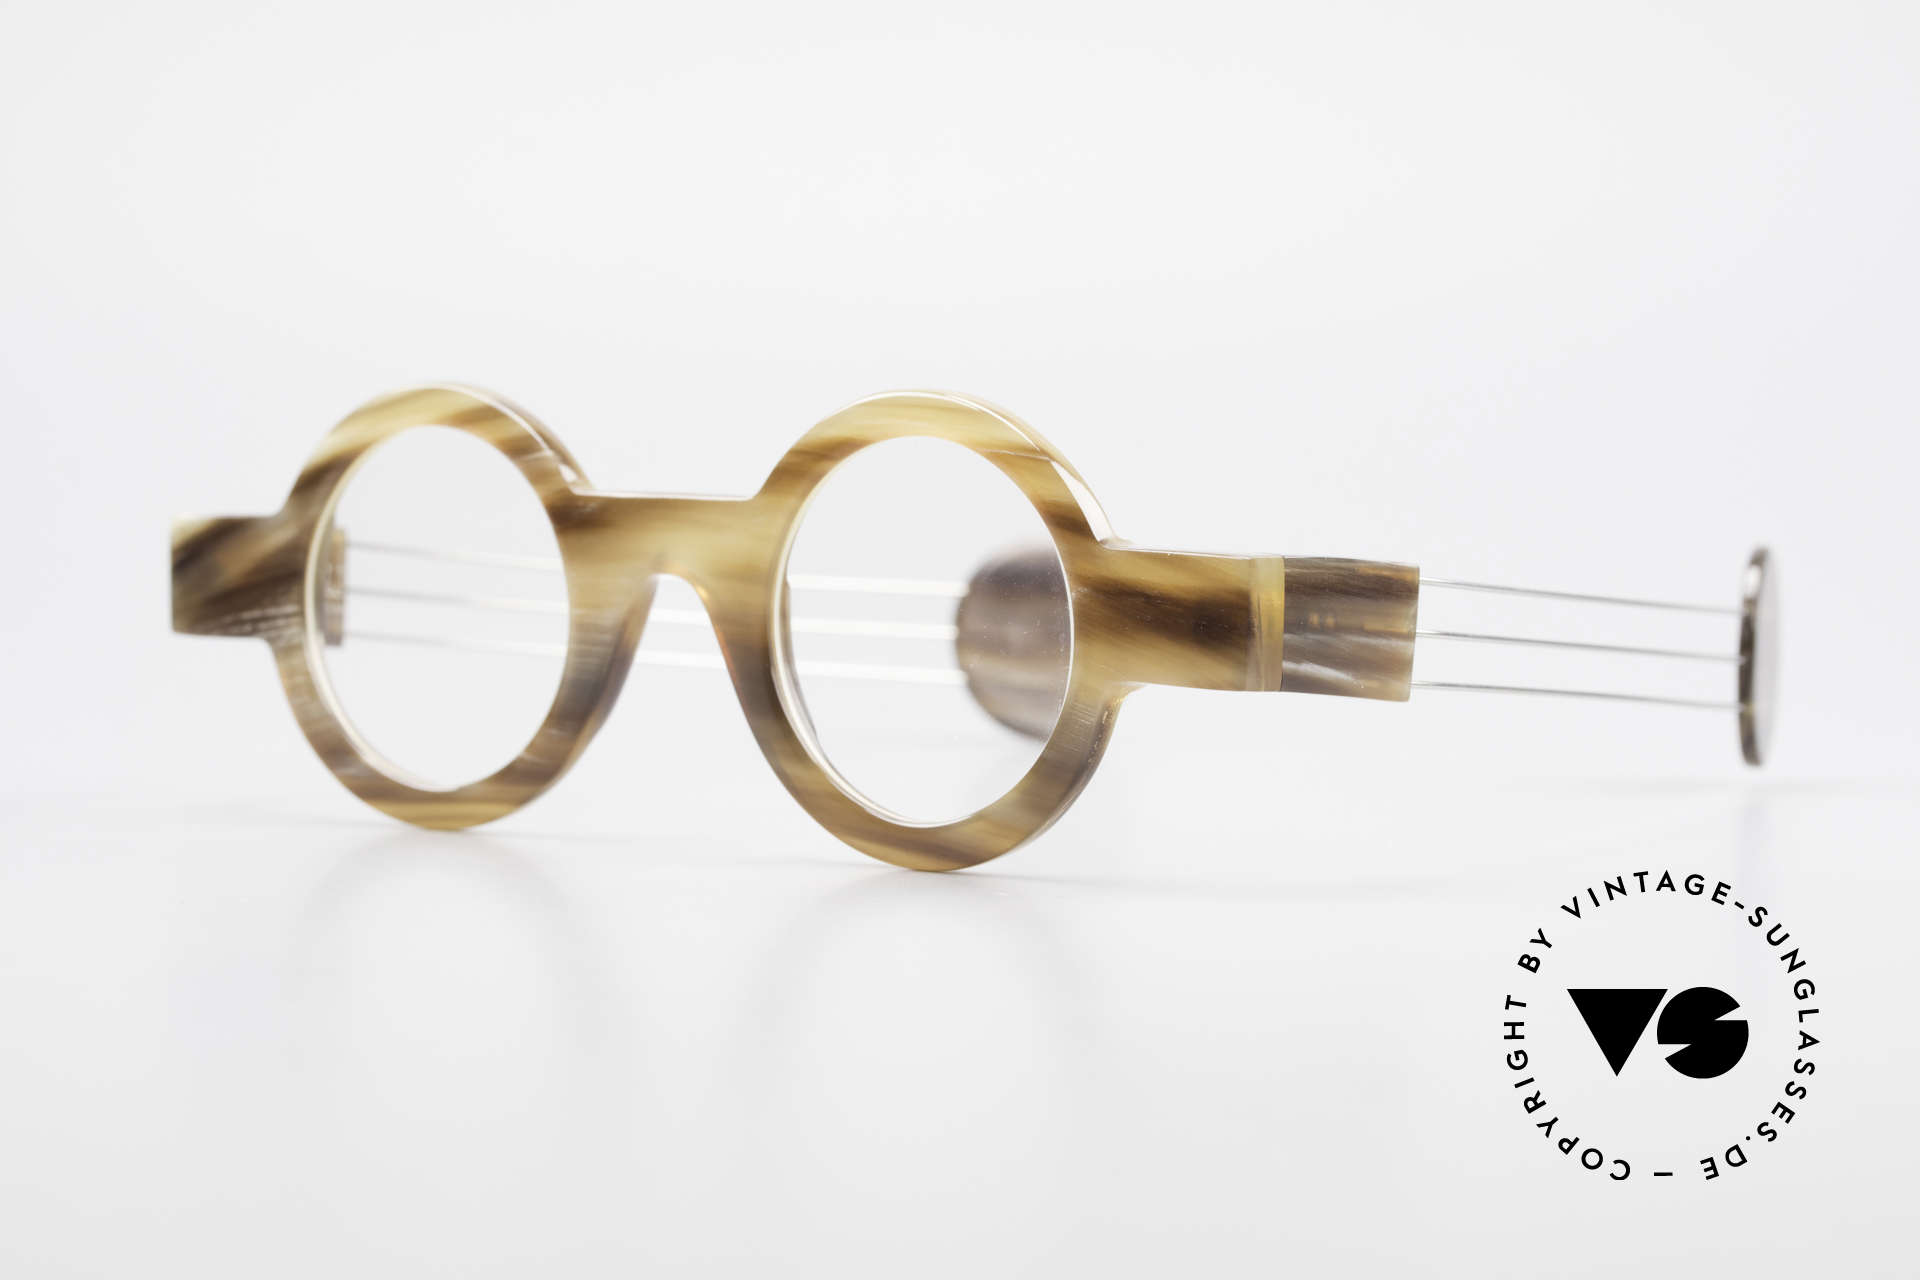 P. Klenk Bold 022 Horn Frame Twistable Temples, every horn model looks individual (pure natural material), Made for Men and Women